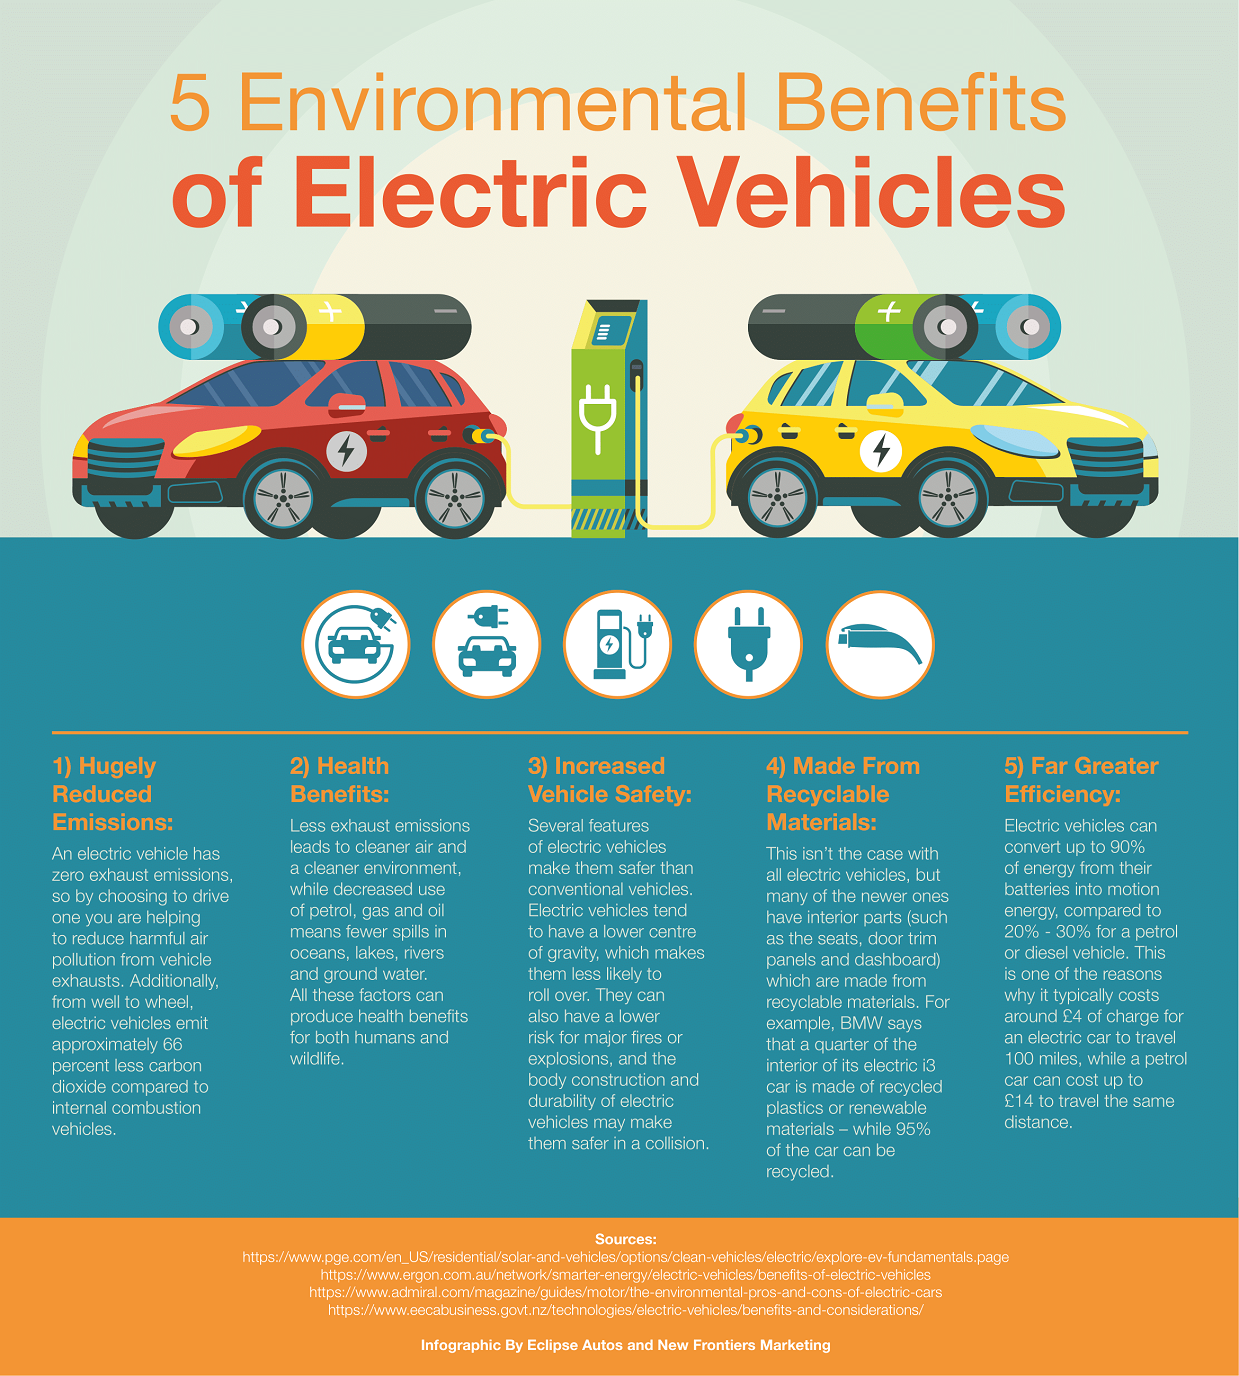 5 Environmental Benefits of Electric Vehicles infographic